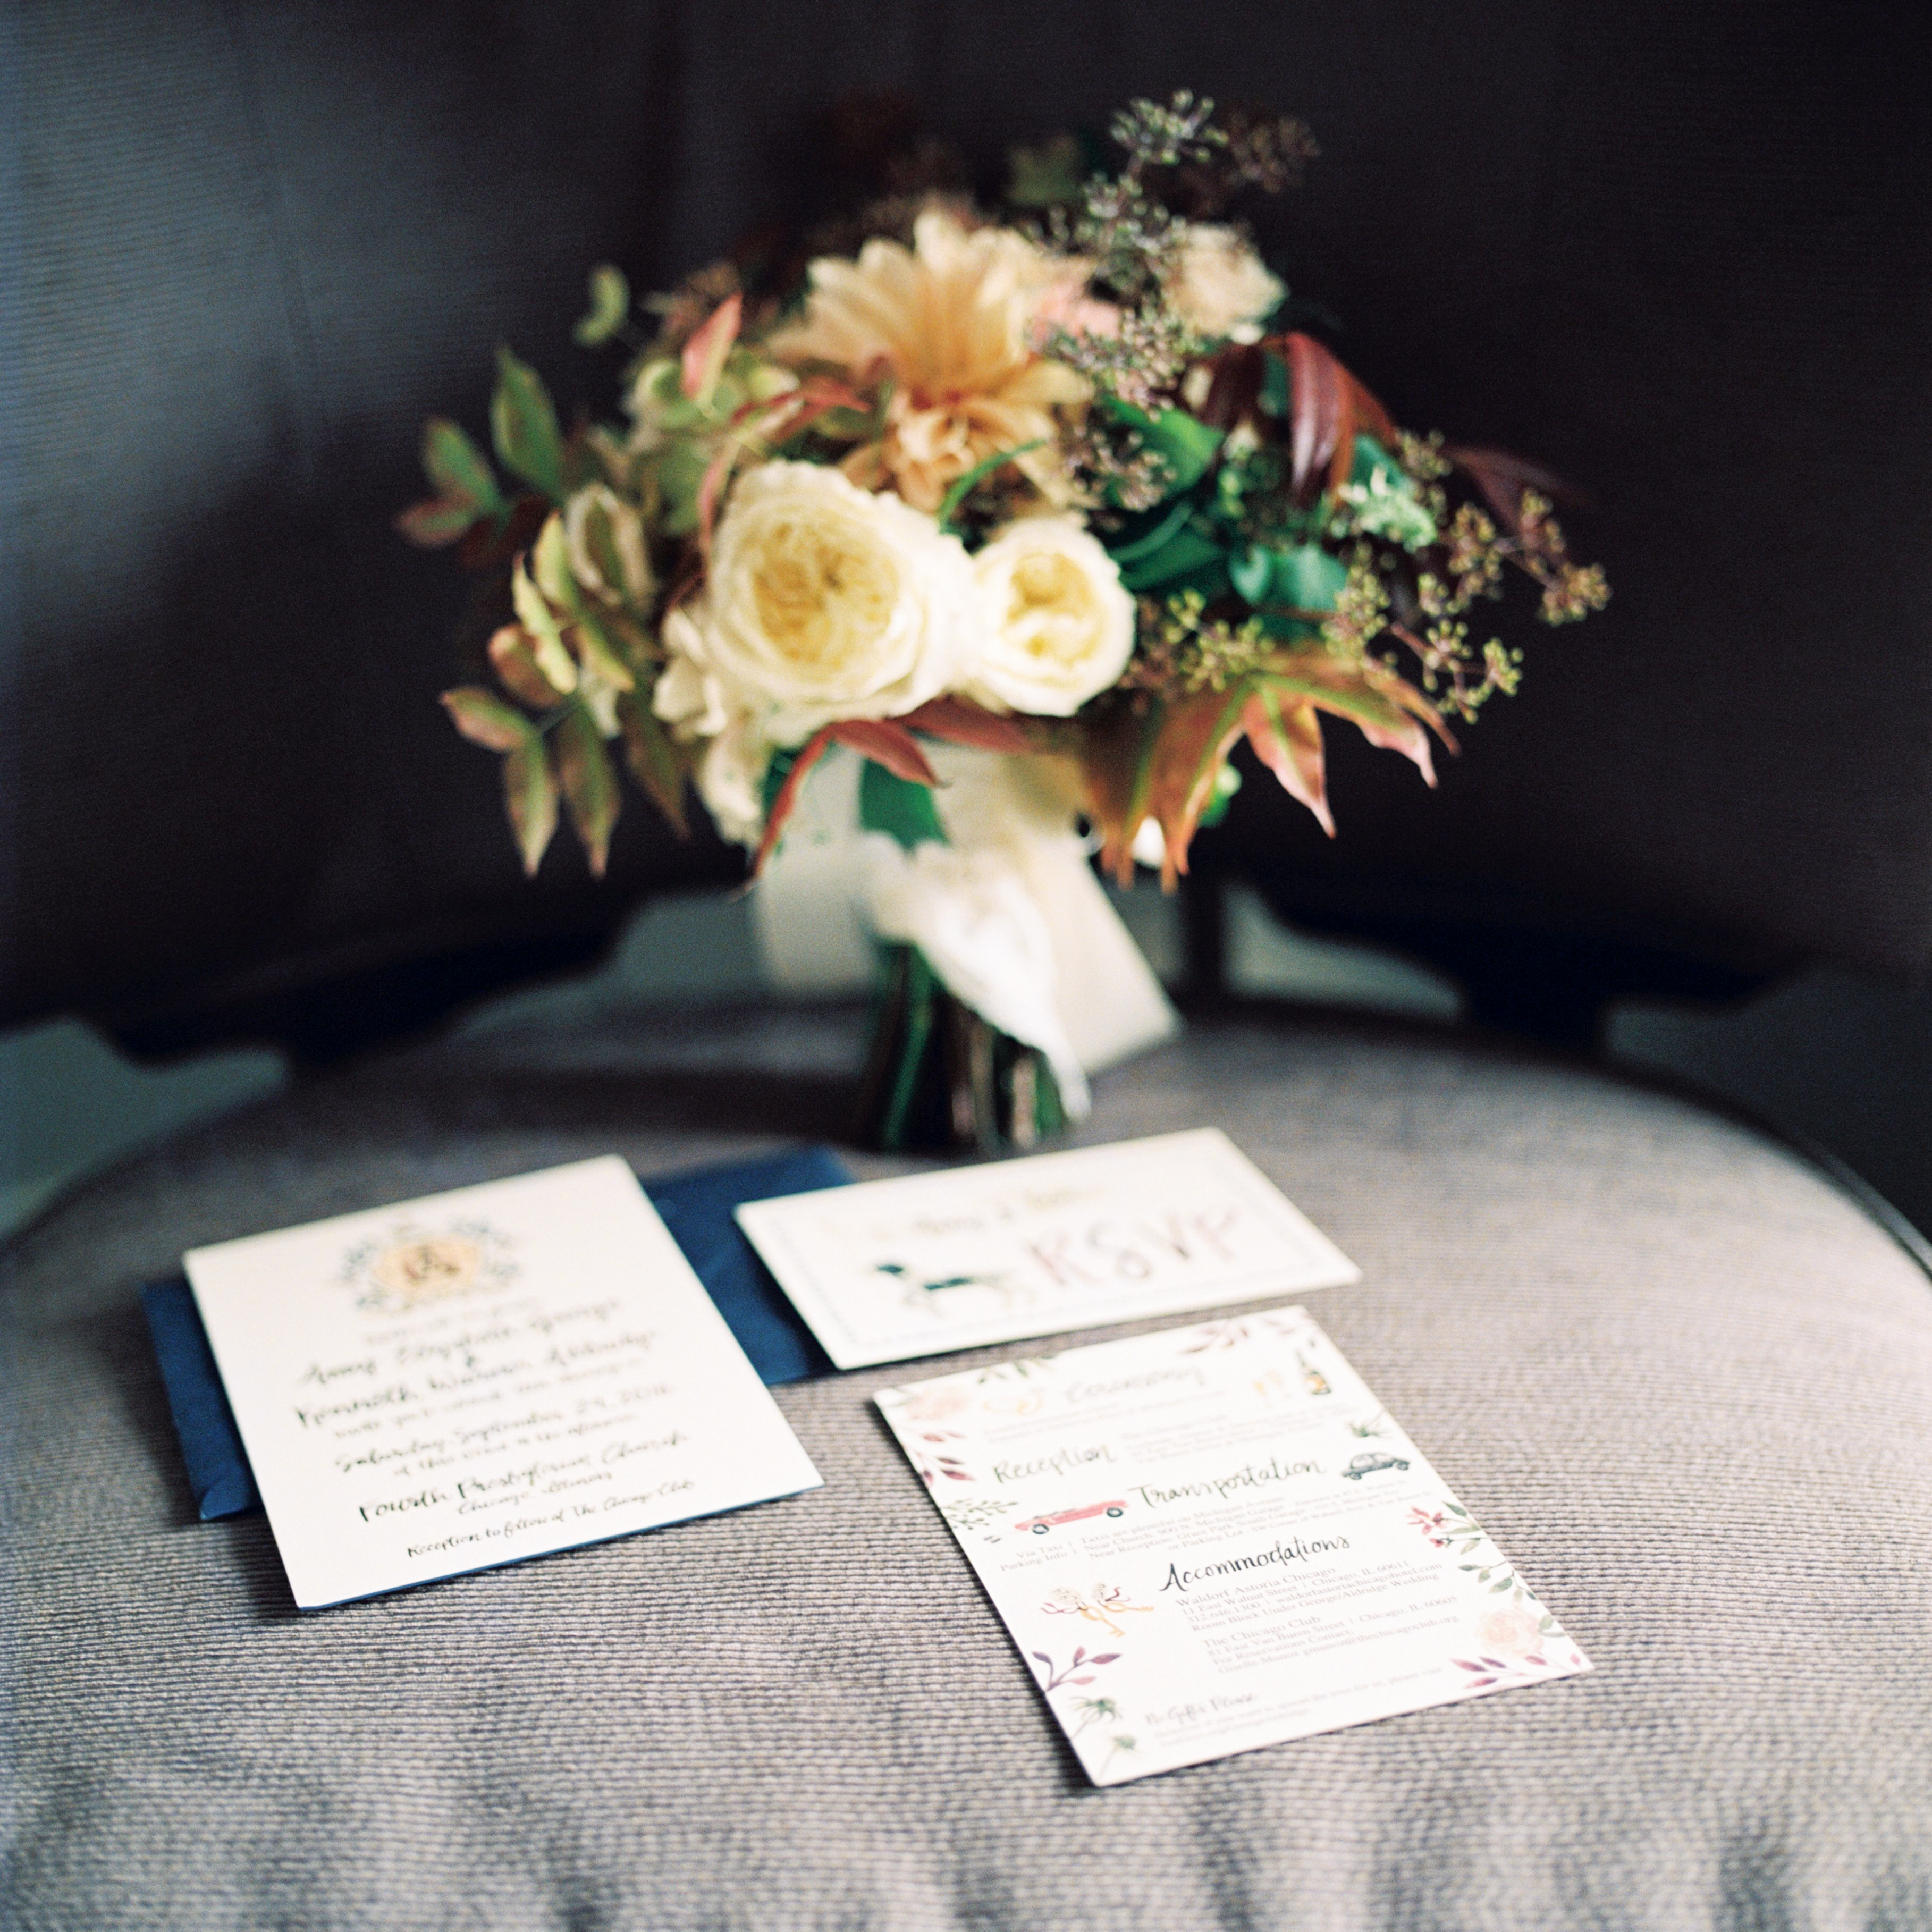 Posted by EJD Design - A Invitations & Print professional